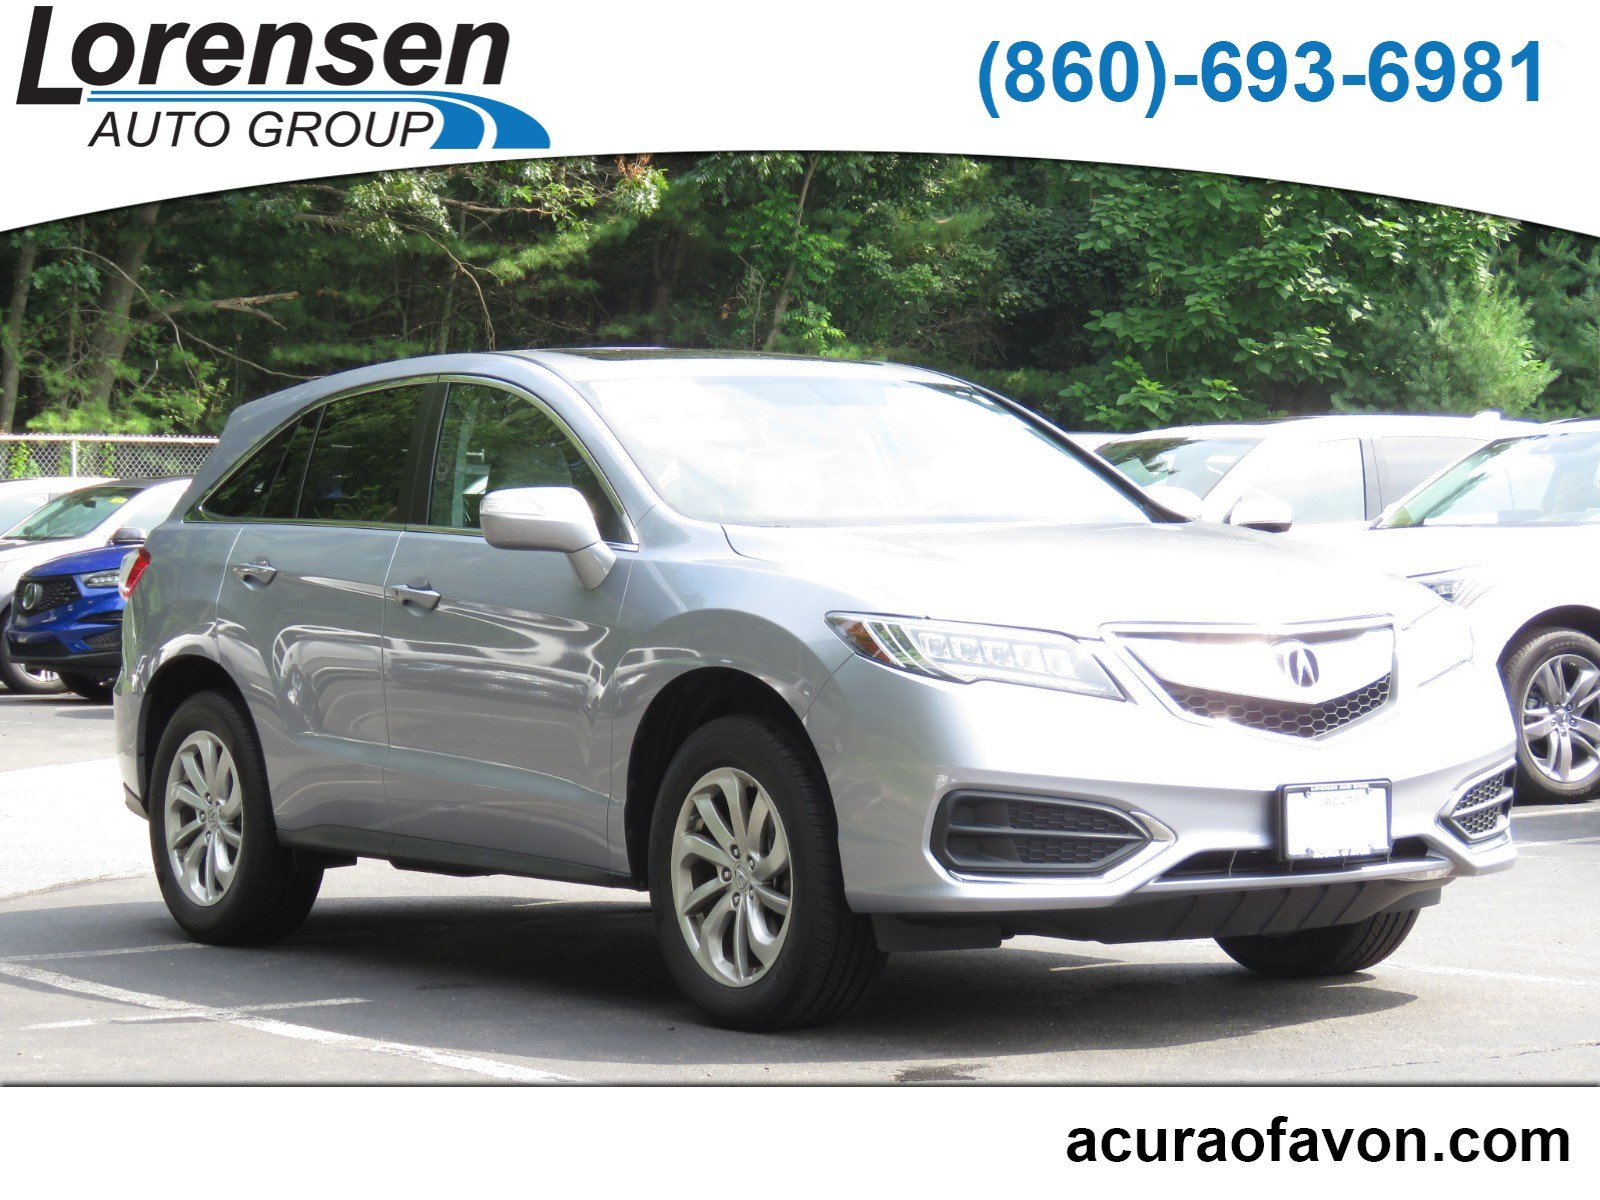 Pre Owned 2016 Acura RDX AWD 4dr Sport Utility in Westbrook 4086